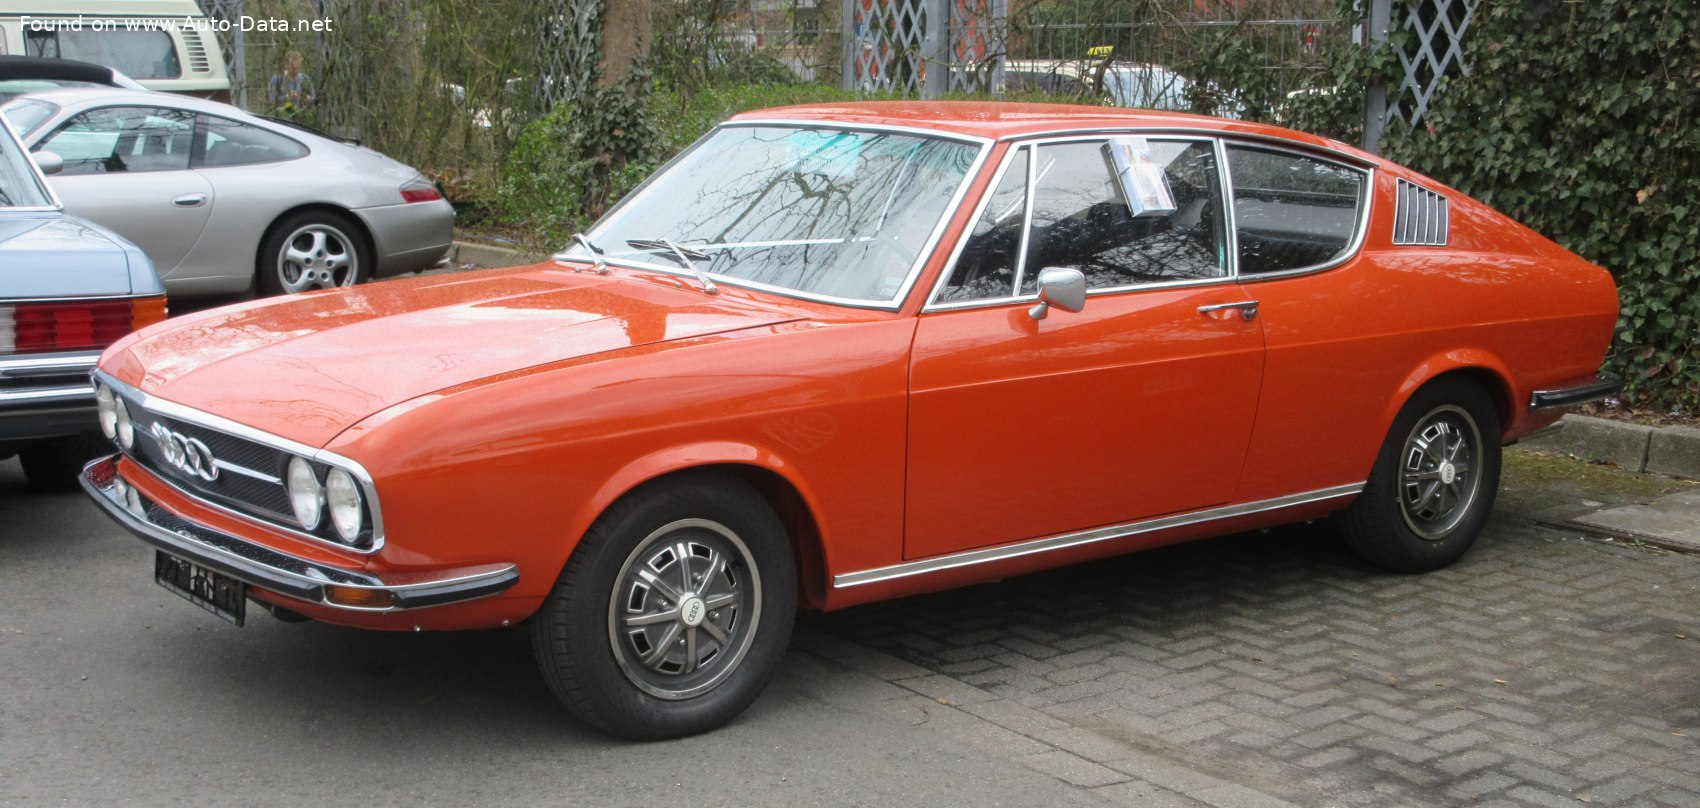 1970 Audi 100 Coupe S 1.9 (116 Hp)   Technical specs, data ...